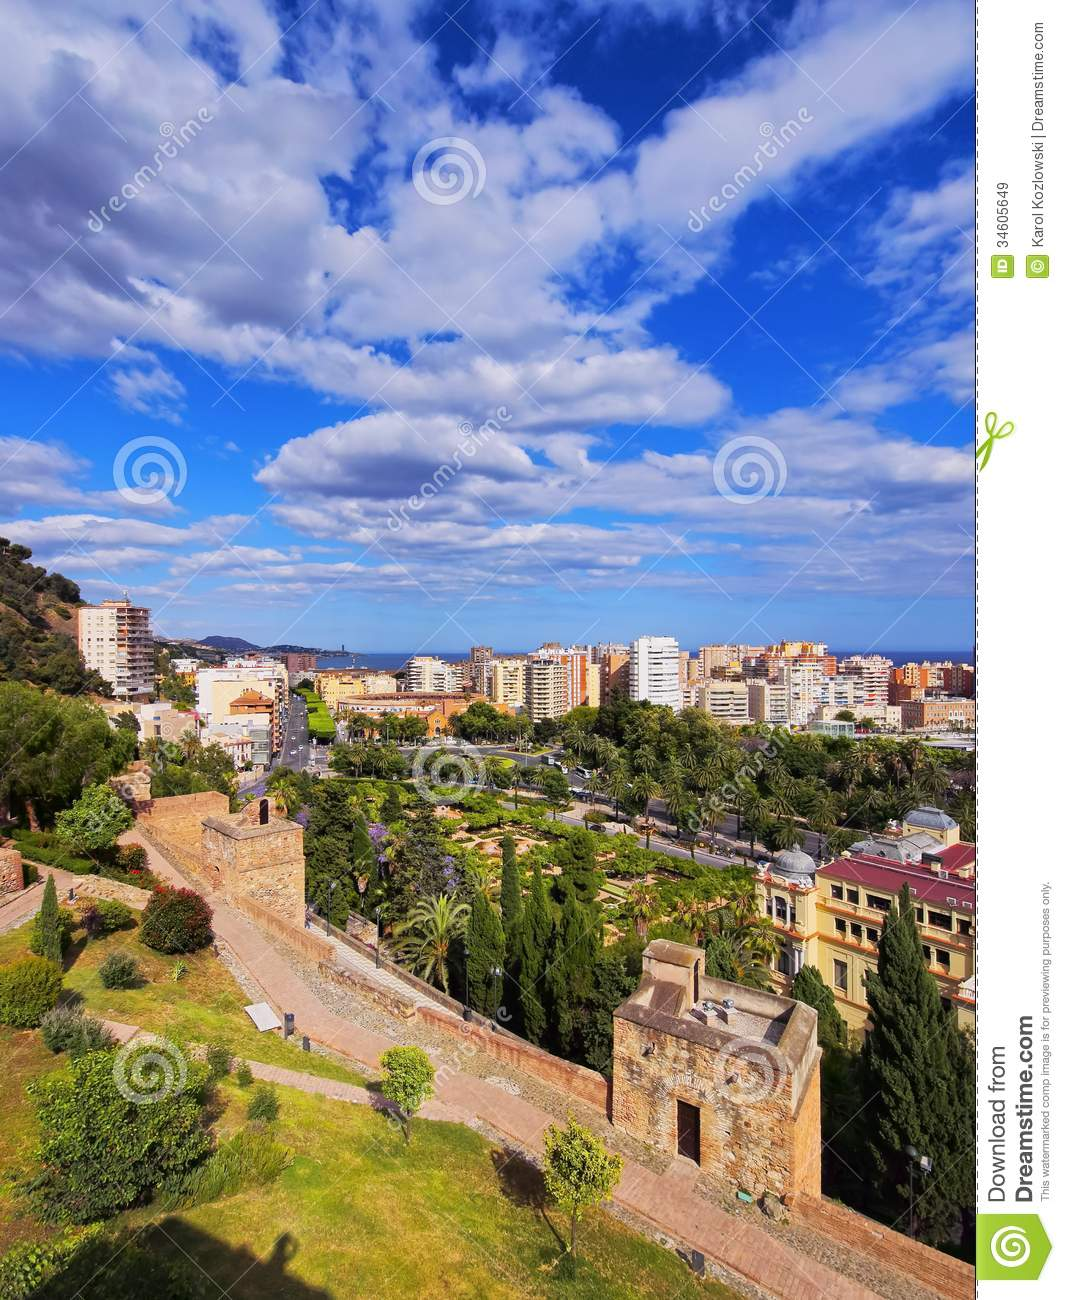 alcazaba in malaga spain royalty free stock images image 34605649. Black Bedroom Furniture Sets. Home Design Ideas